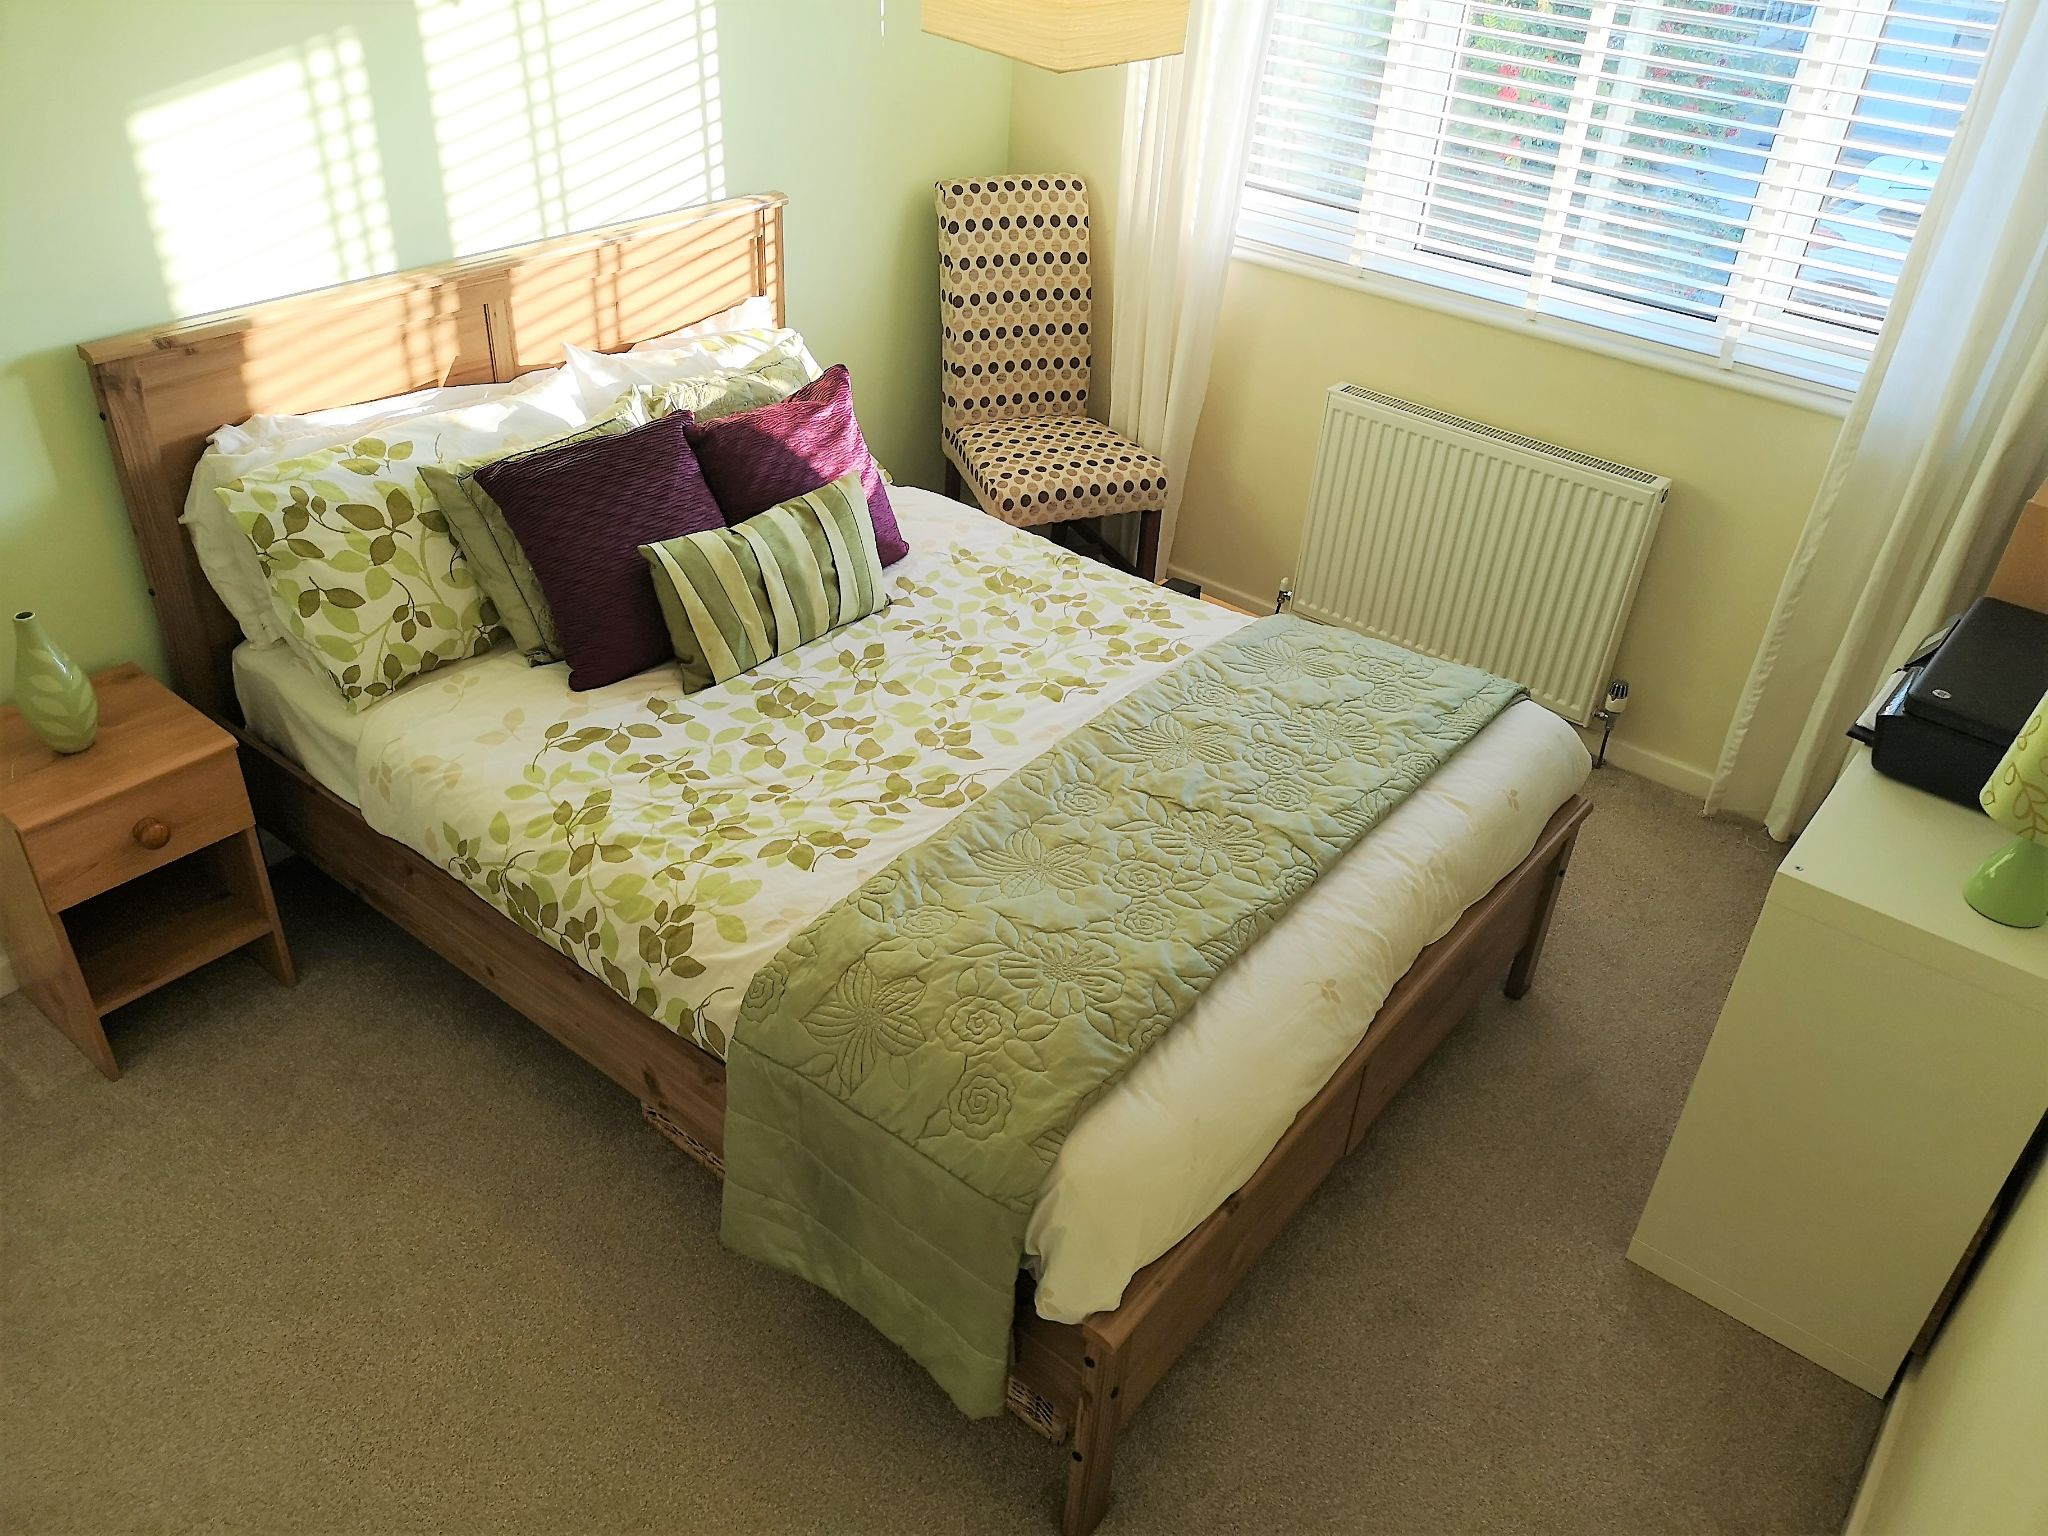 3 bedroom semi-detached house SSTC in Huddersfield - Photograph 3